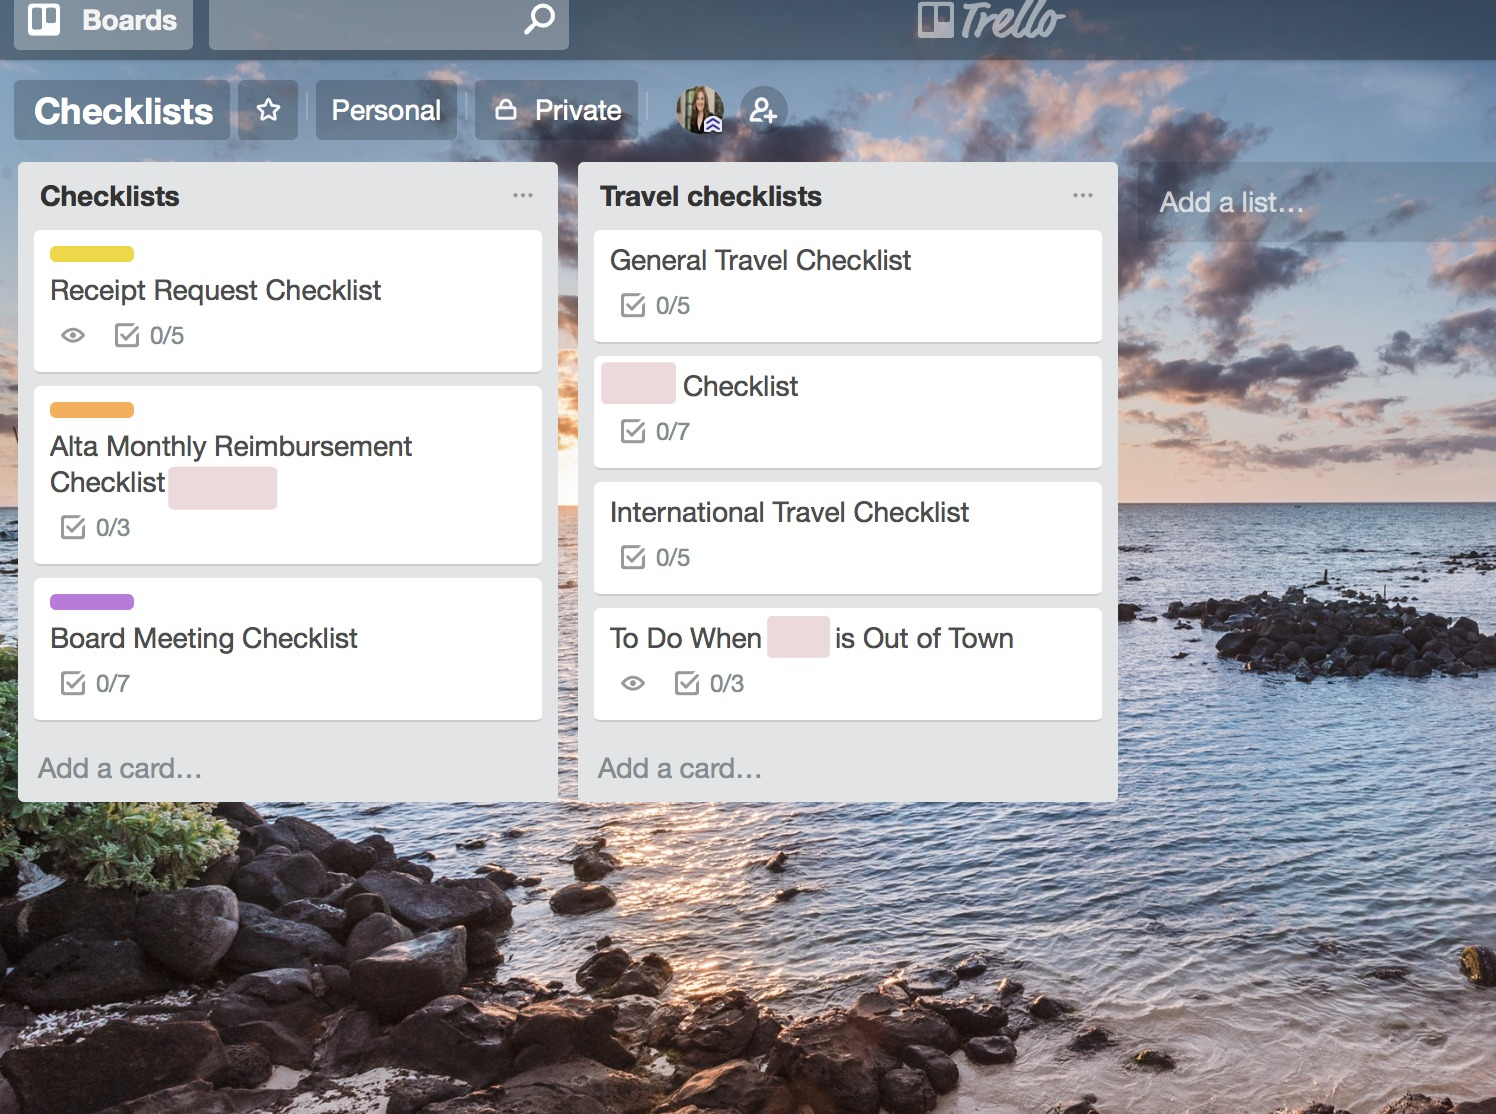 Trello for Assistants - Checklists 1.jpg